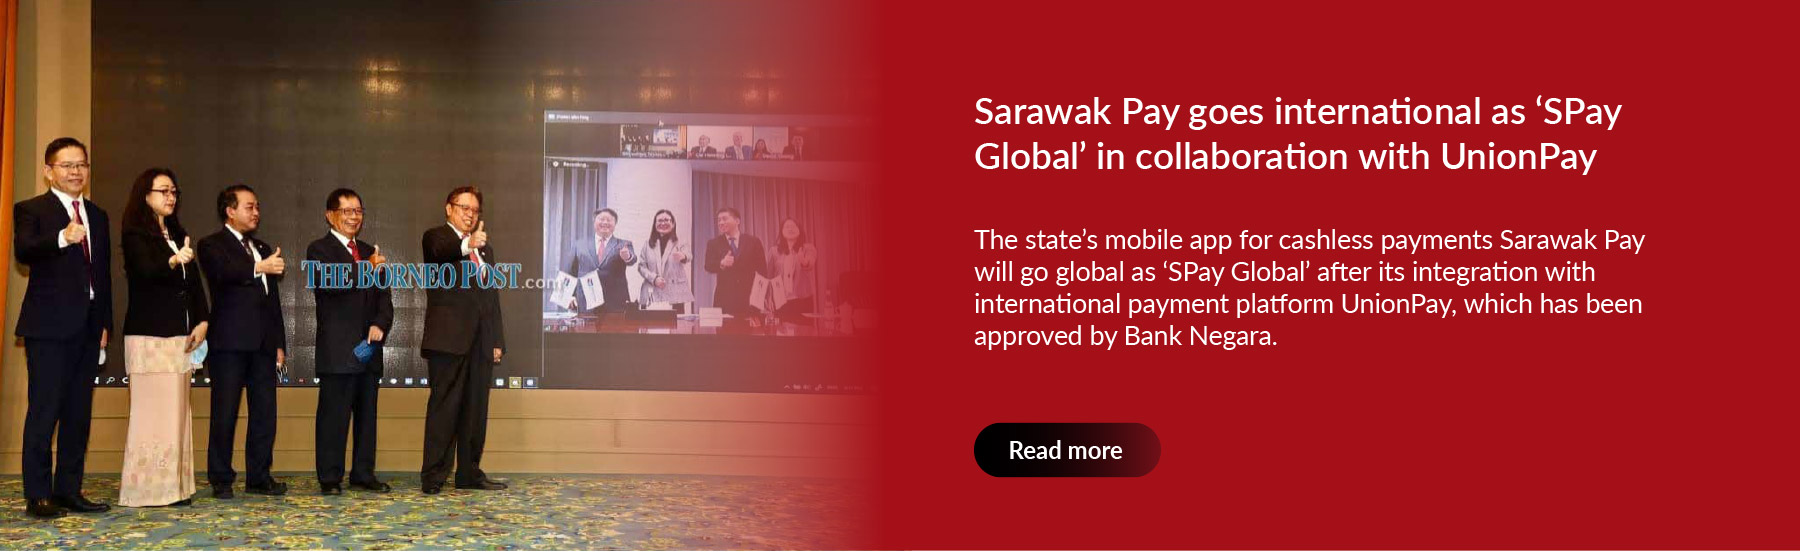 Sarawak Pay goes international as 'SPay Global' in collaboration with UnionPay